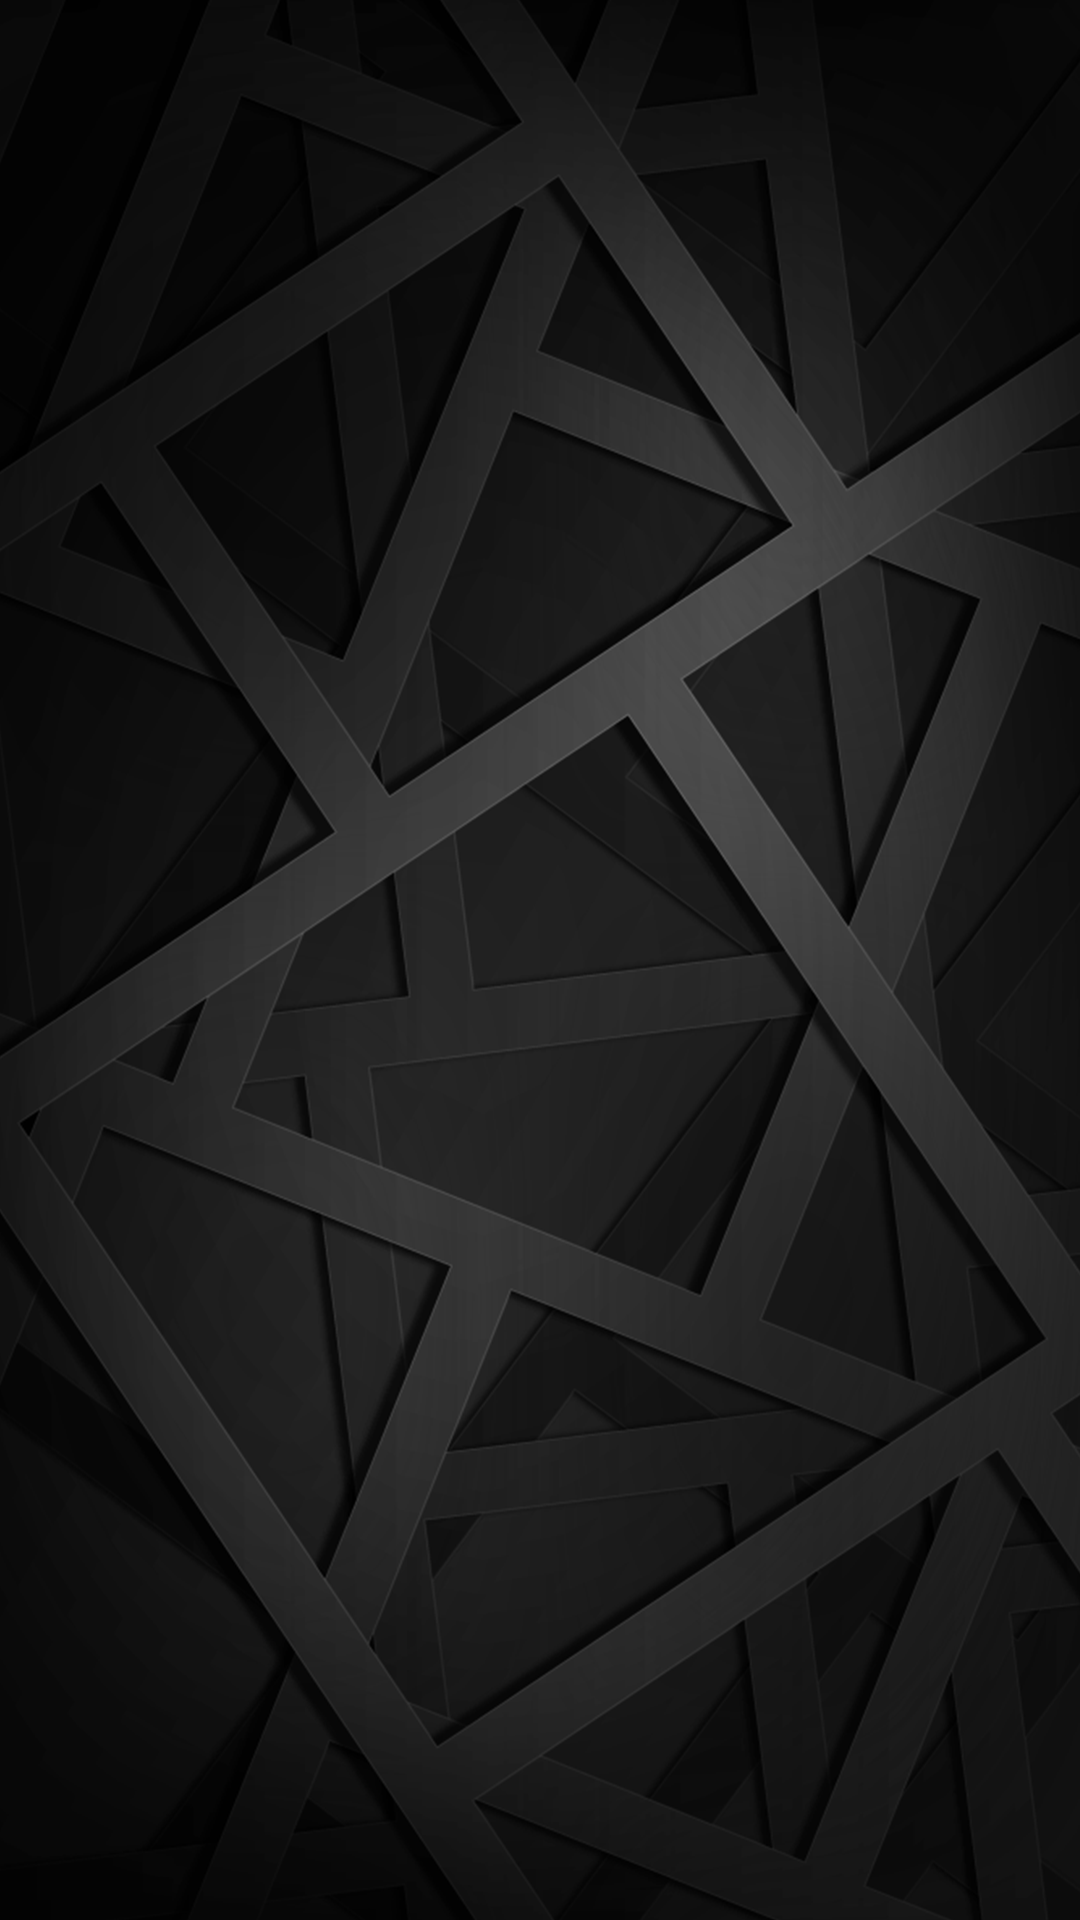 Hd 4k Ultra Dark Android Phone Wallpapers Wallpaper Cave